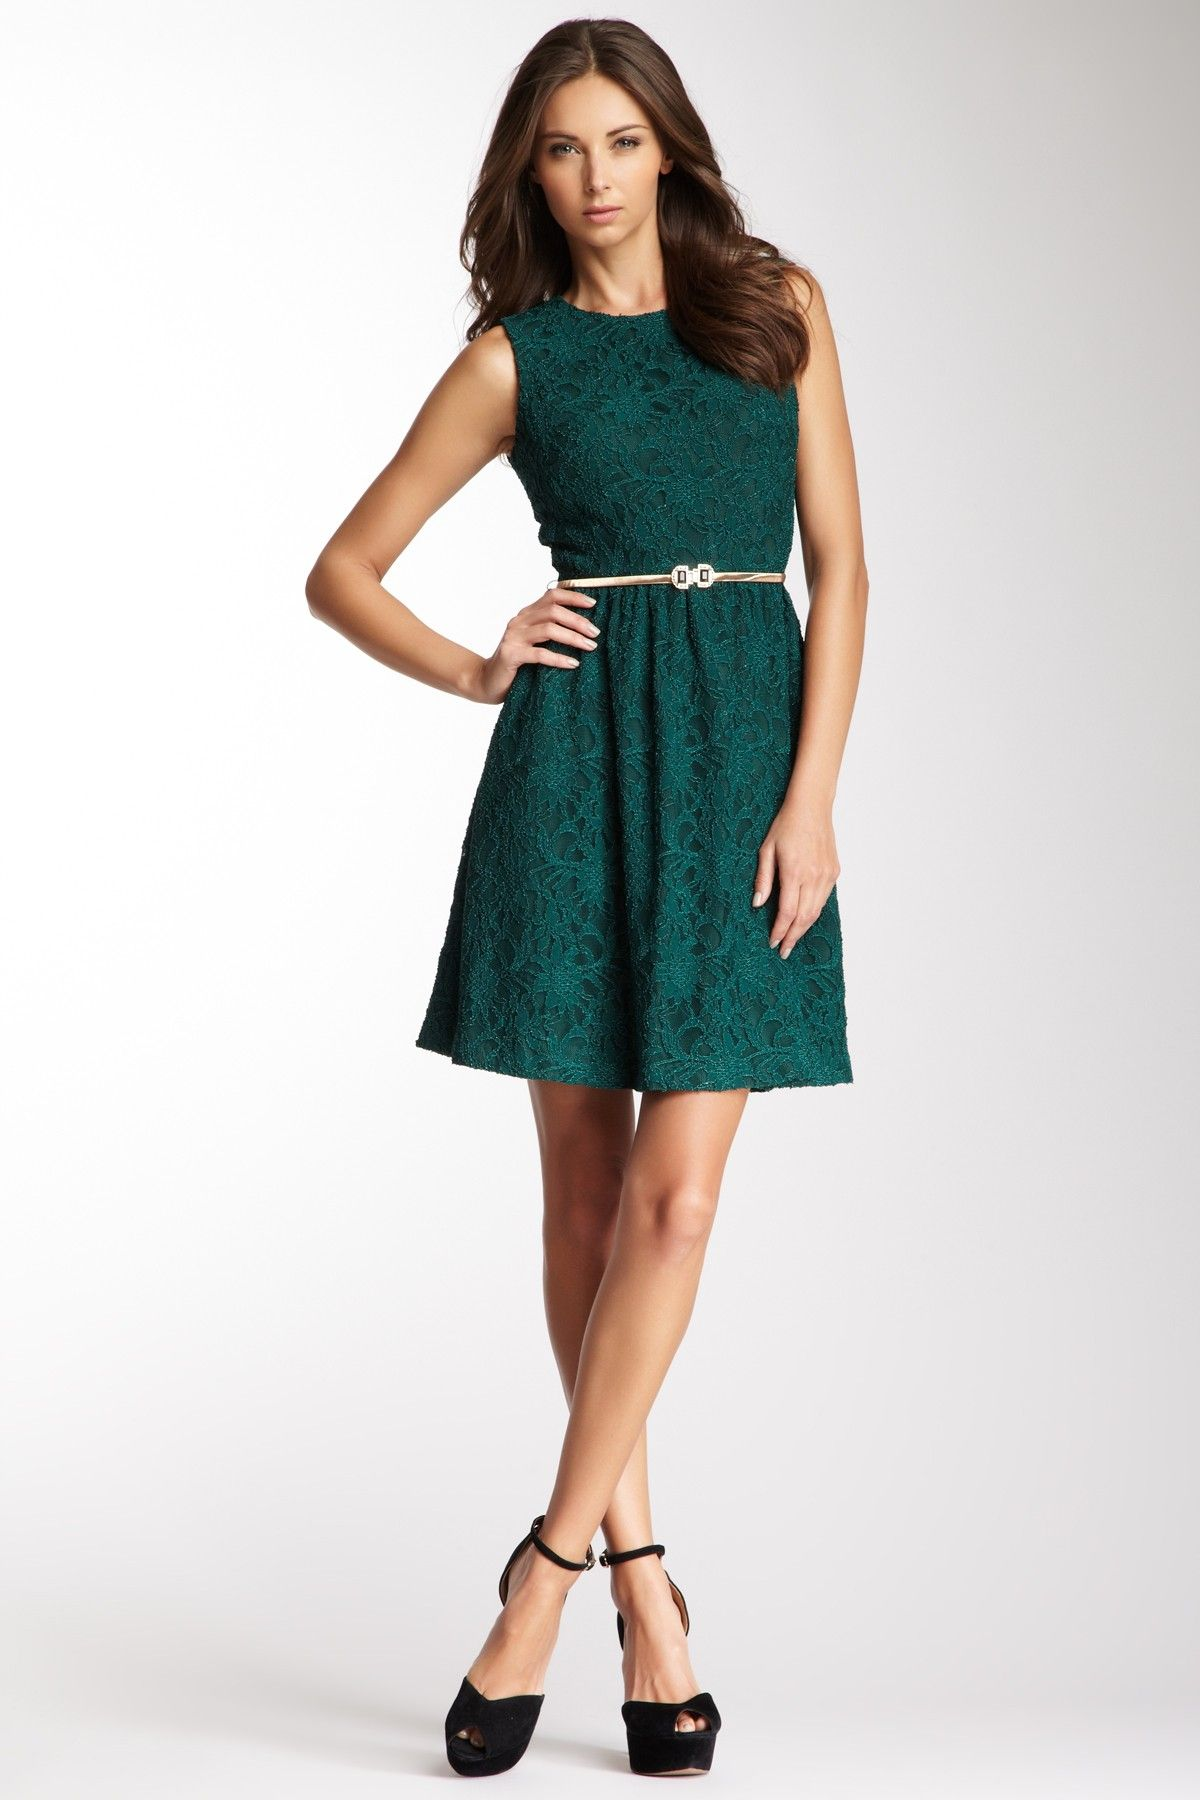 Lace A-Line Belted Dress.the color is beautiful.